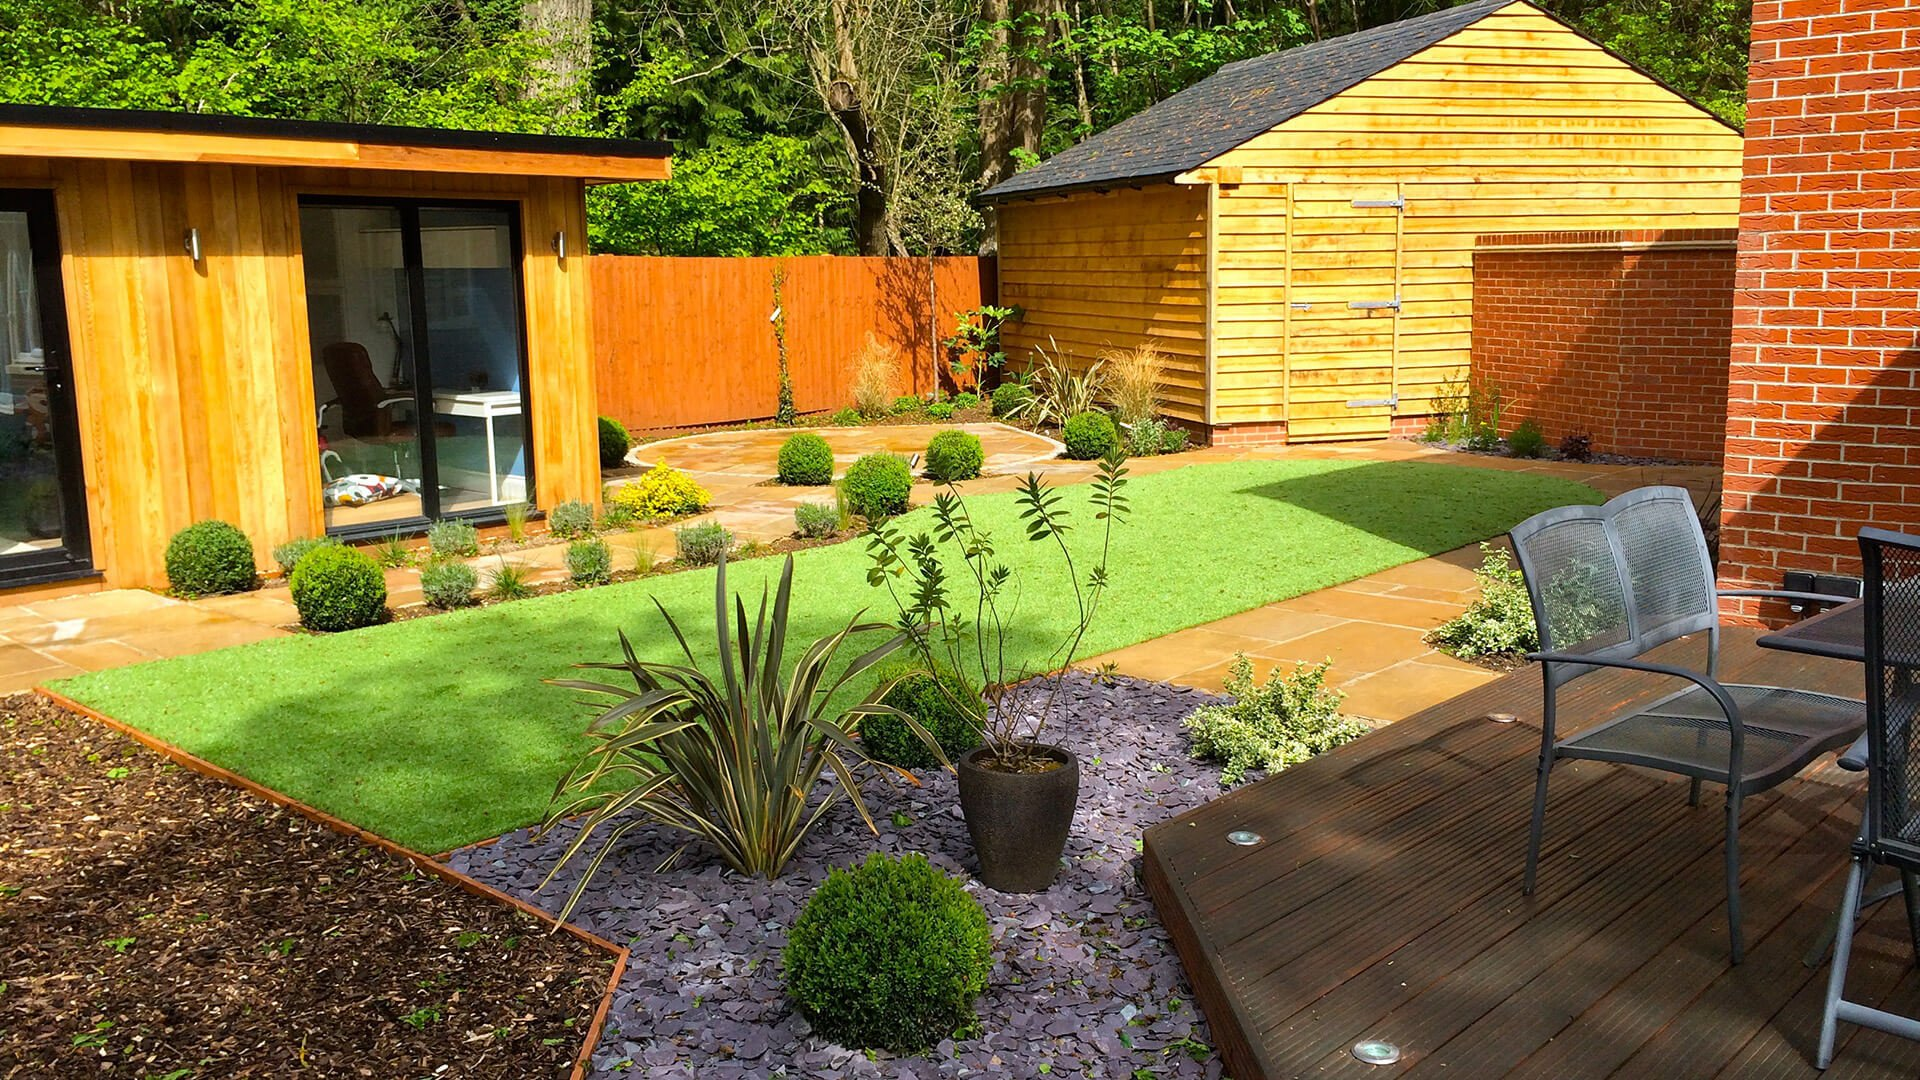 modern back yard garden with green space and paved alleys